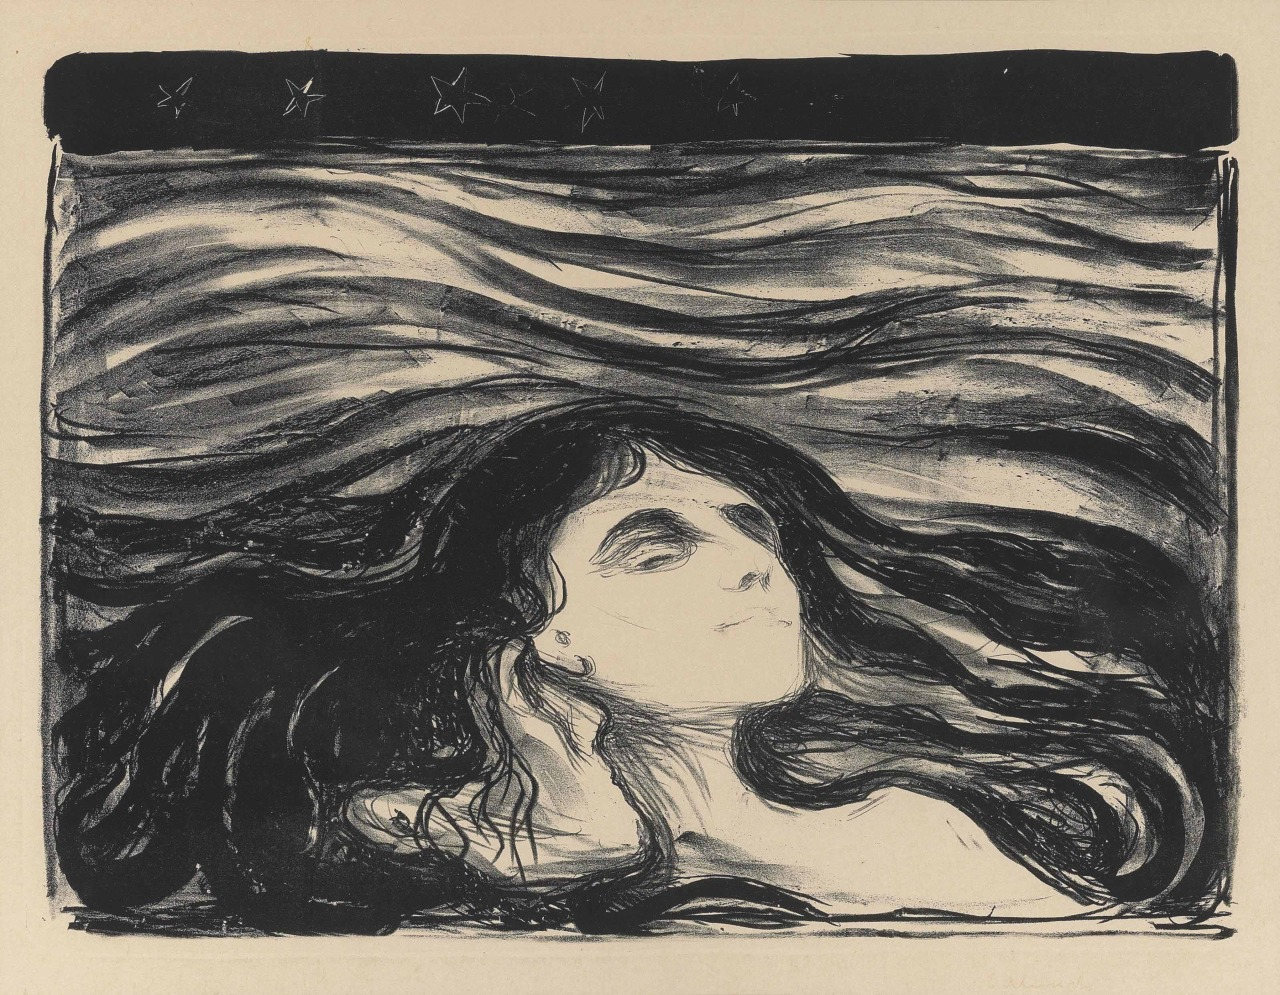 nevver:  On the Waves of Love, Edvard Munch  I saw this on my dash and exhaled. A deep release. This makes me float on waves right along with it.